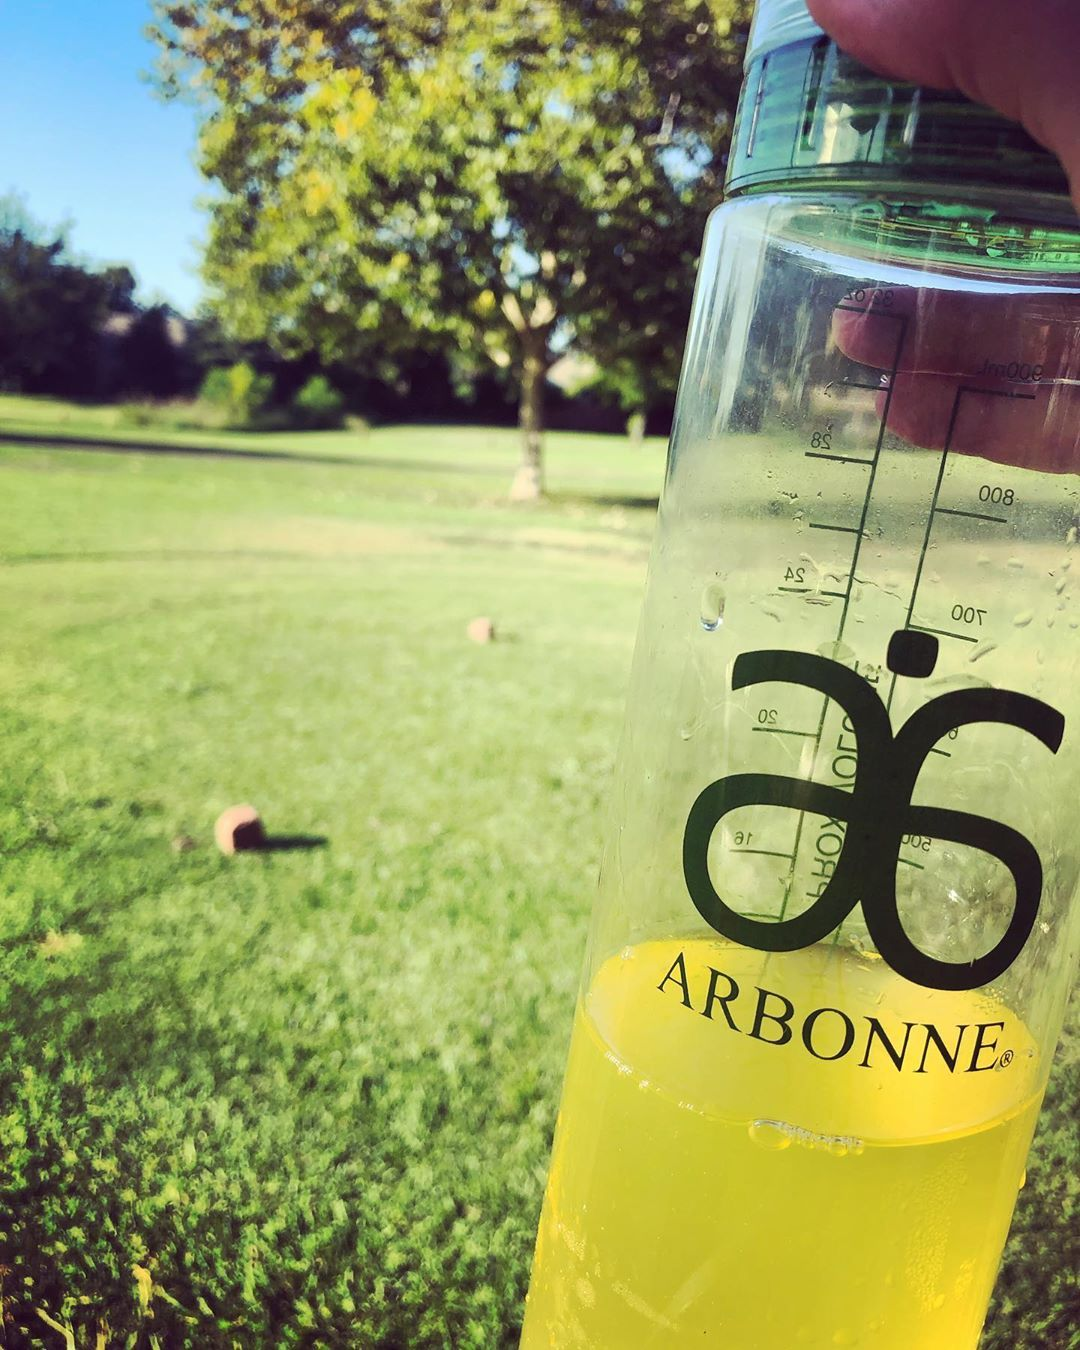 I may not share much Arbonne lately (or anything for that matter) but I ASSURE you it is still very much a part of my daily life! . . . #socialmediahiatus #onthereturn #stillhere #workworkwork #golf #fizzsticklife #everyday